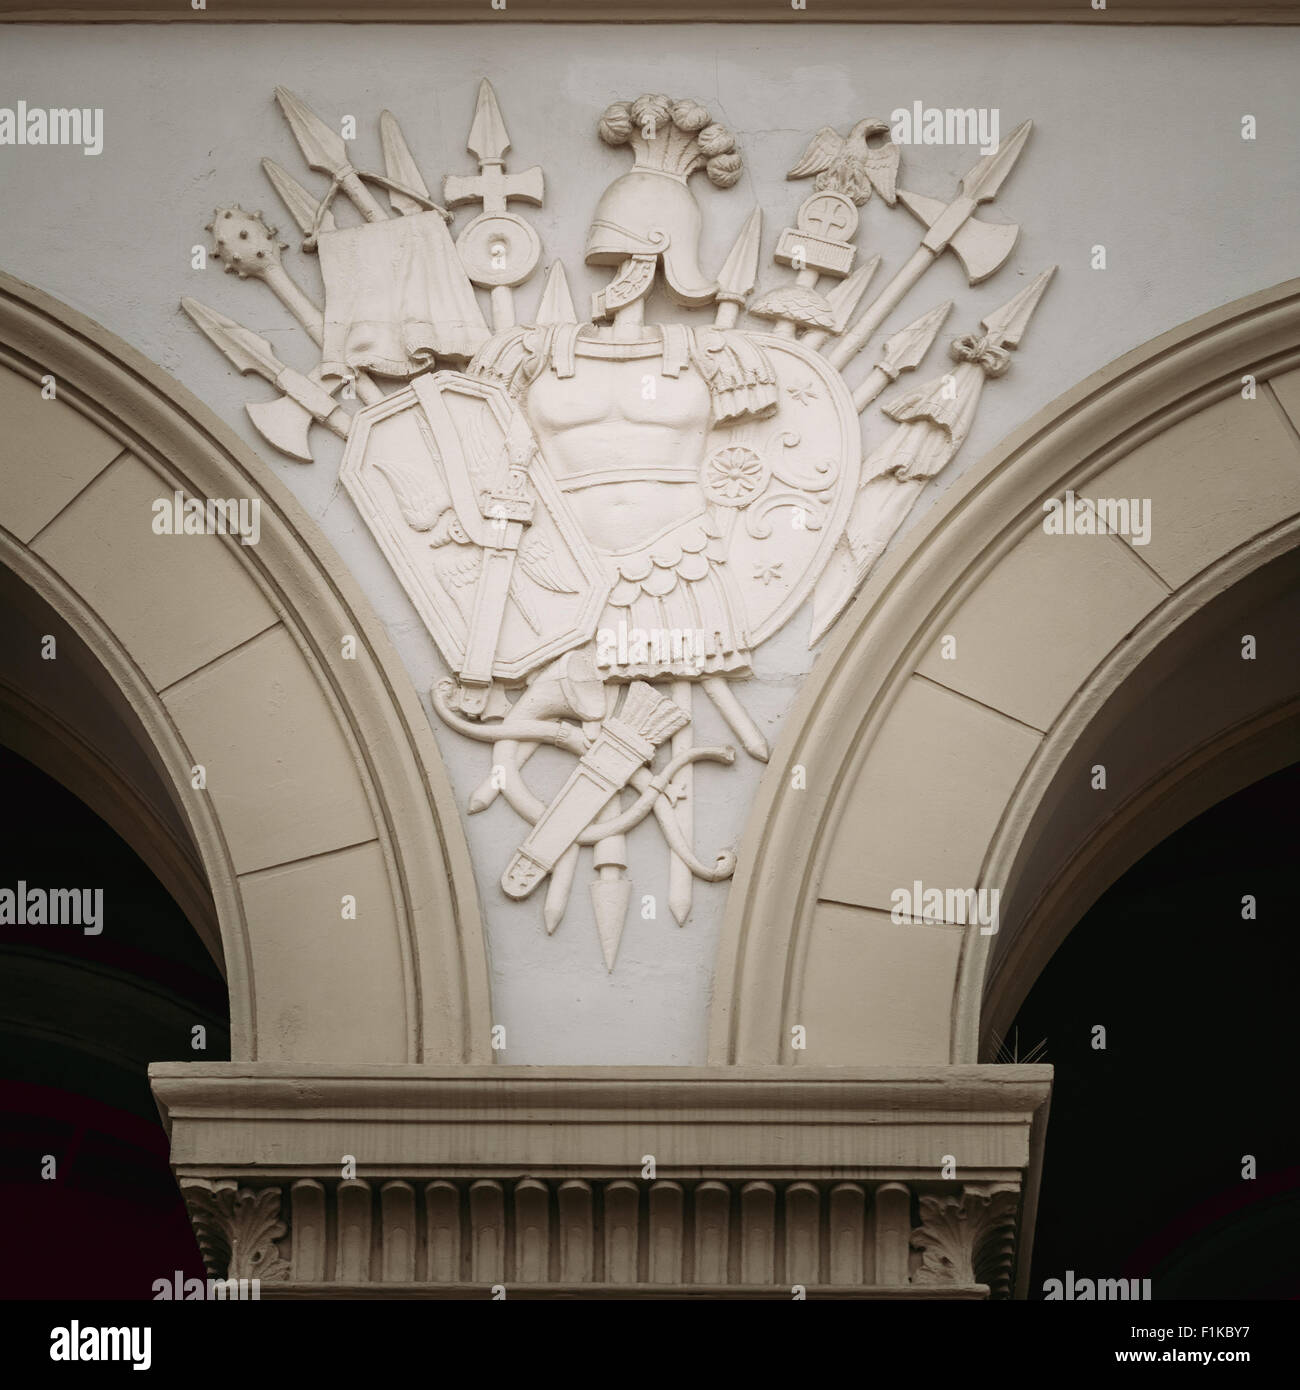 Bas-relief On Wall Of Royal Palace (Det Kongelige Slott) In Oslo, Norway Stock Photo